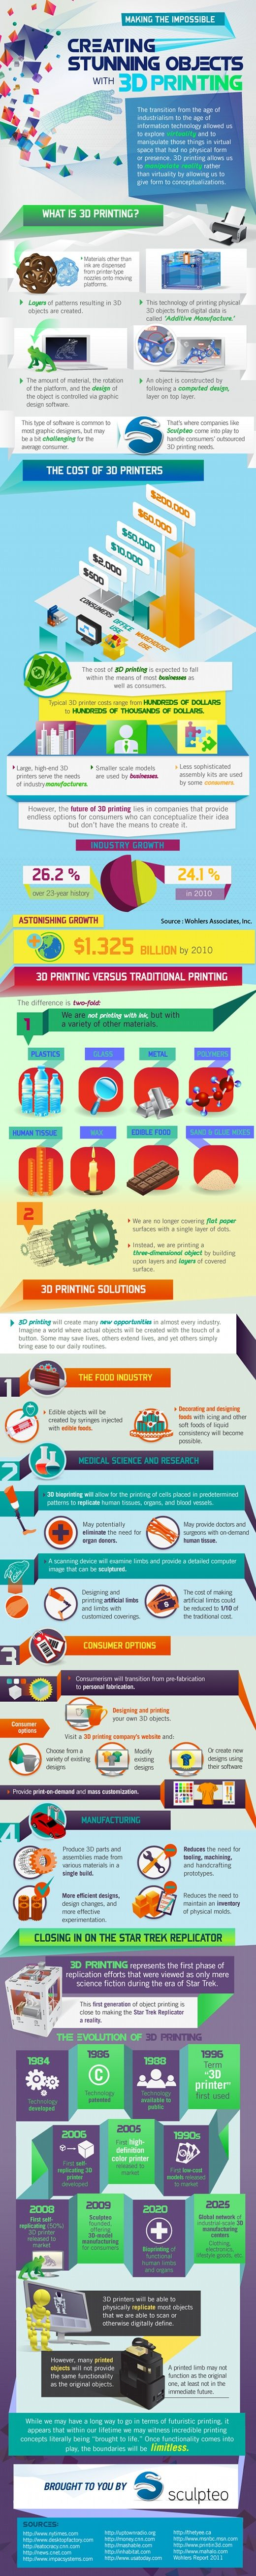 Infographic on 3D printing